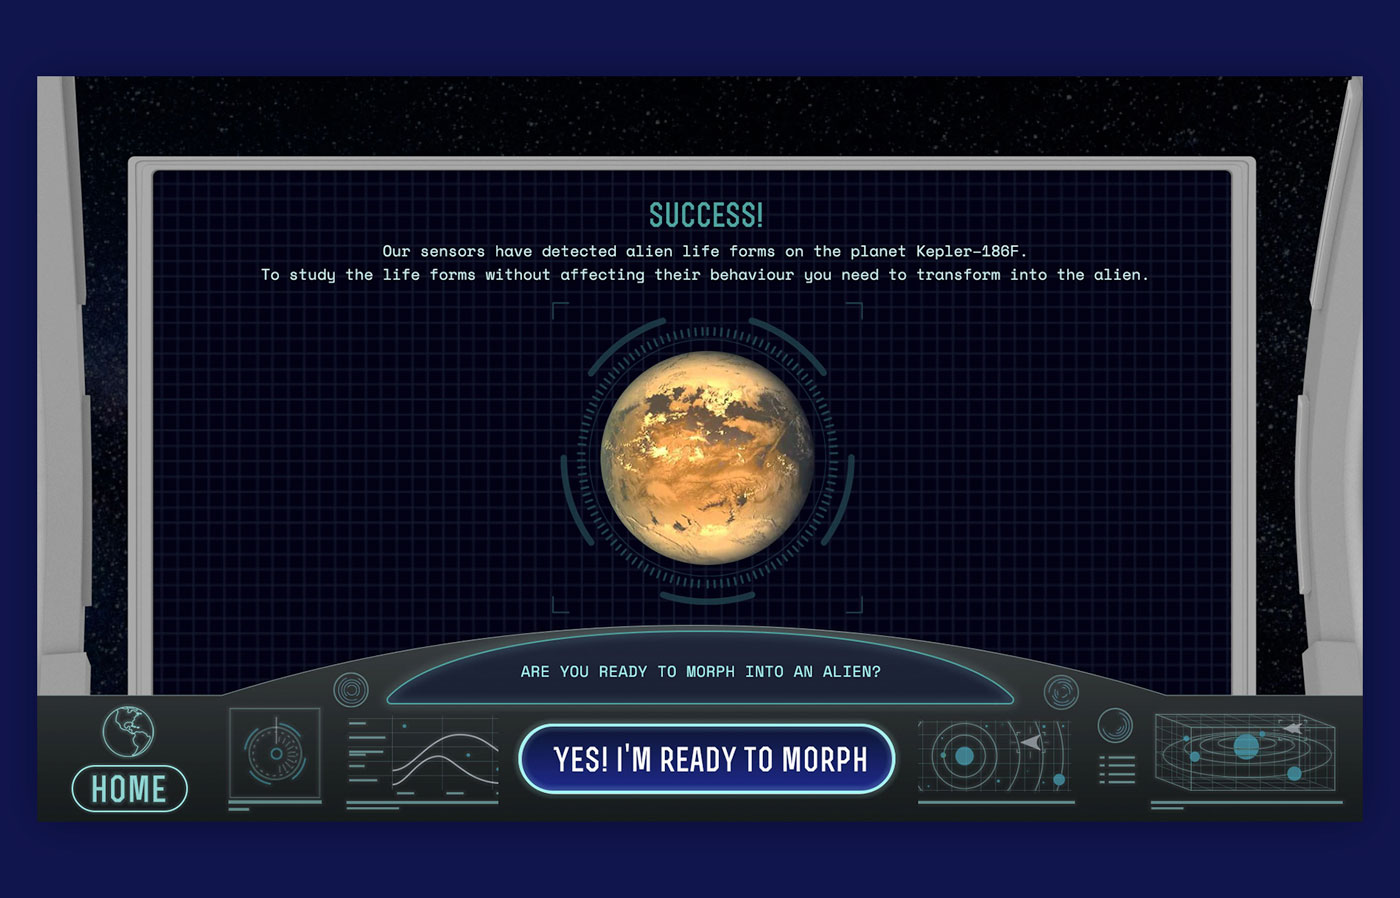 A UI design set up so it looks like you are sitting behind the dashboard of a space ship and you are exploring space. The screen shows a planet you can visit.